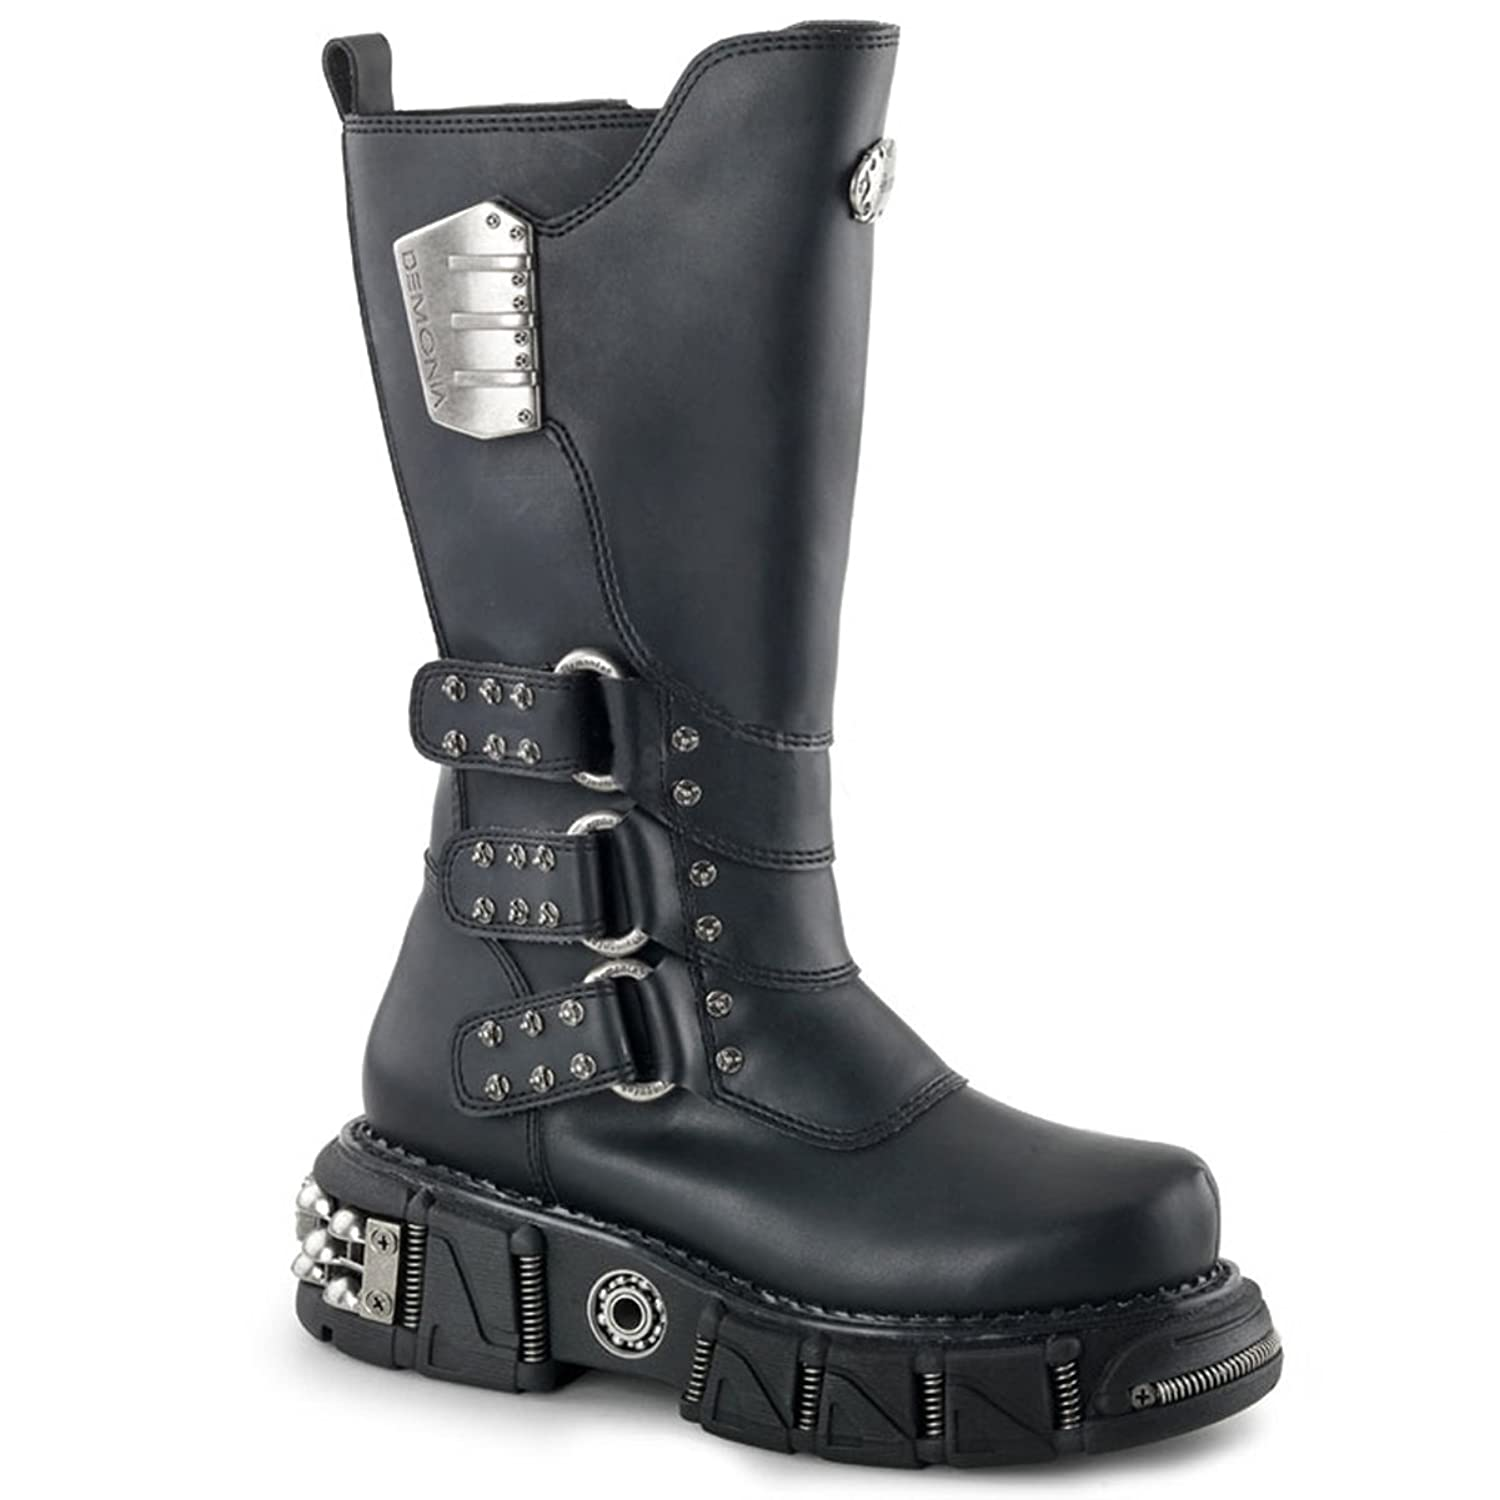 Mens 12.5'' Tall Black Vegan Boots with 2.5'' Sole and Velcro Shaft Closure